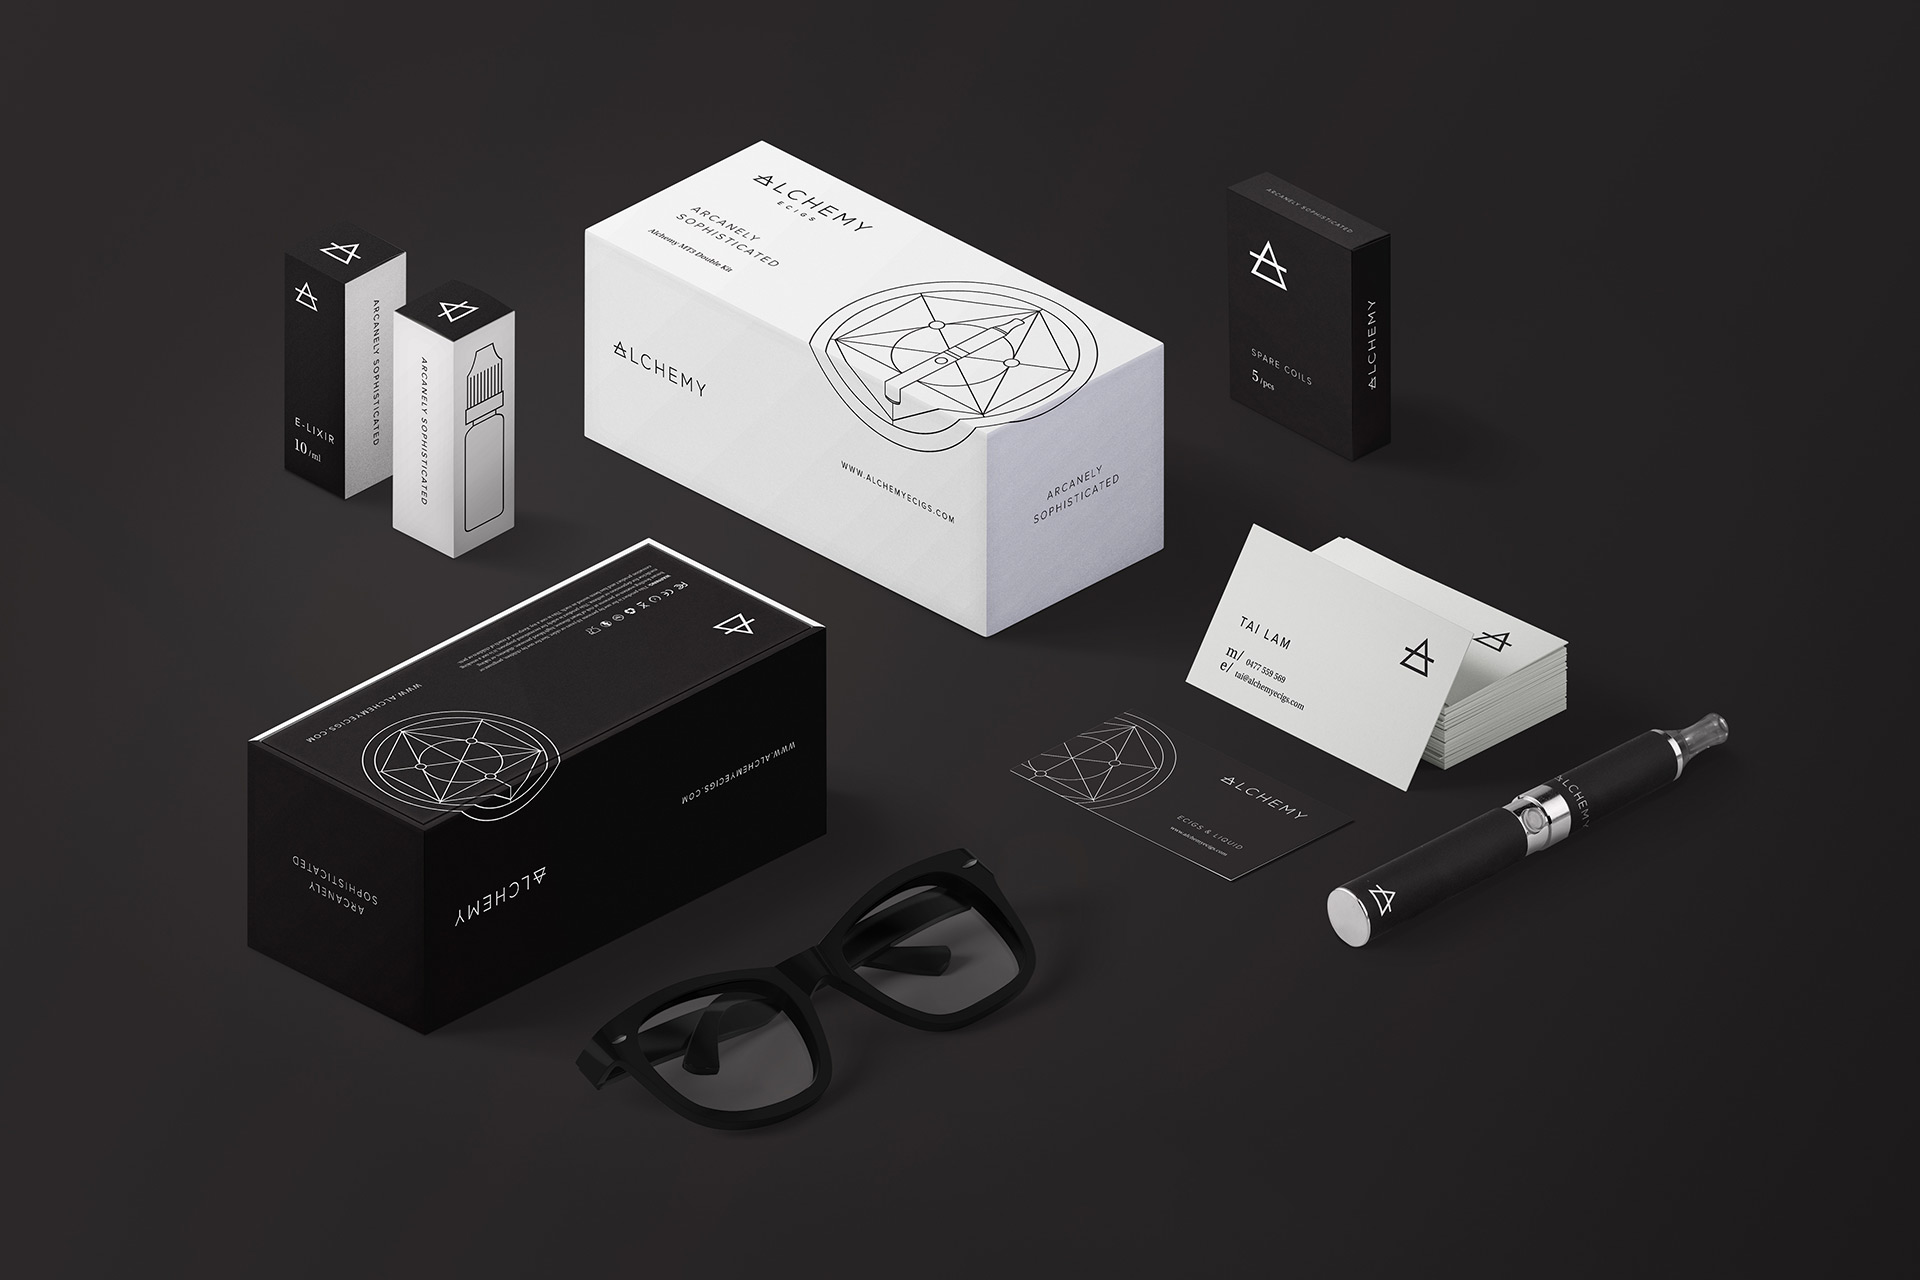 Alchemy-Ecigs-Identity-Design